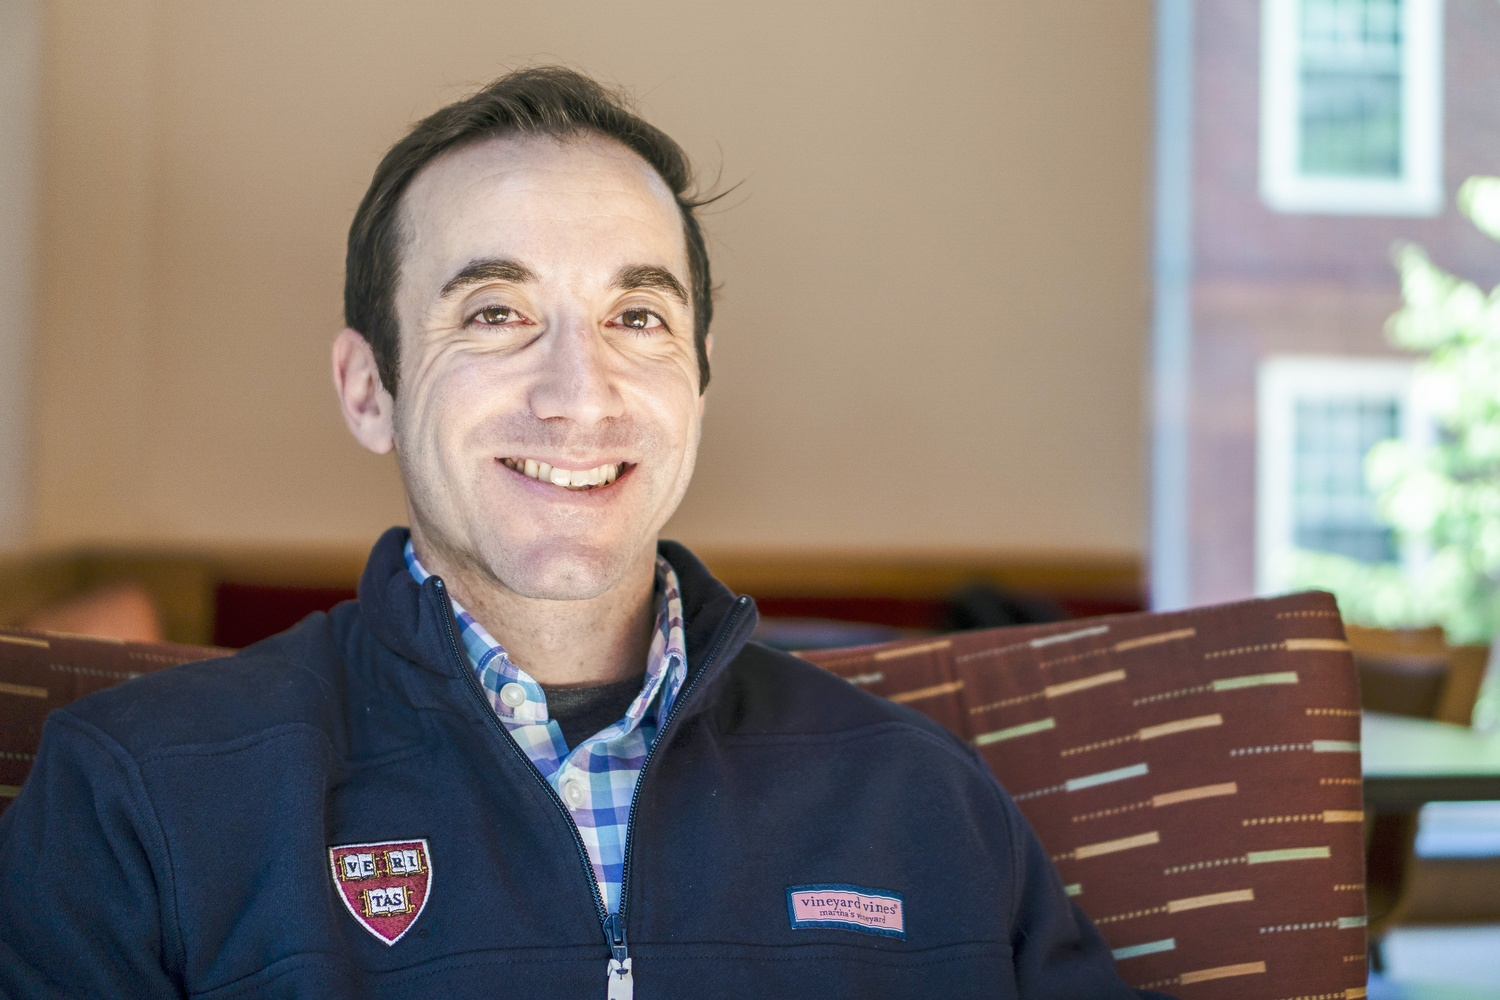 John D. Krohn is a mid-career HKS student who identifies as a moderate Republican.